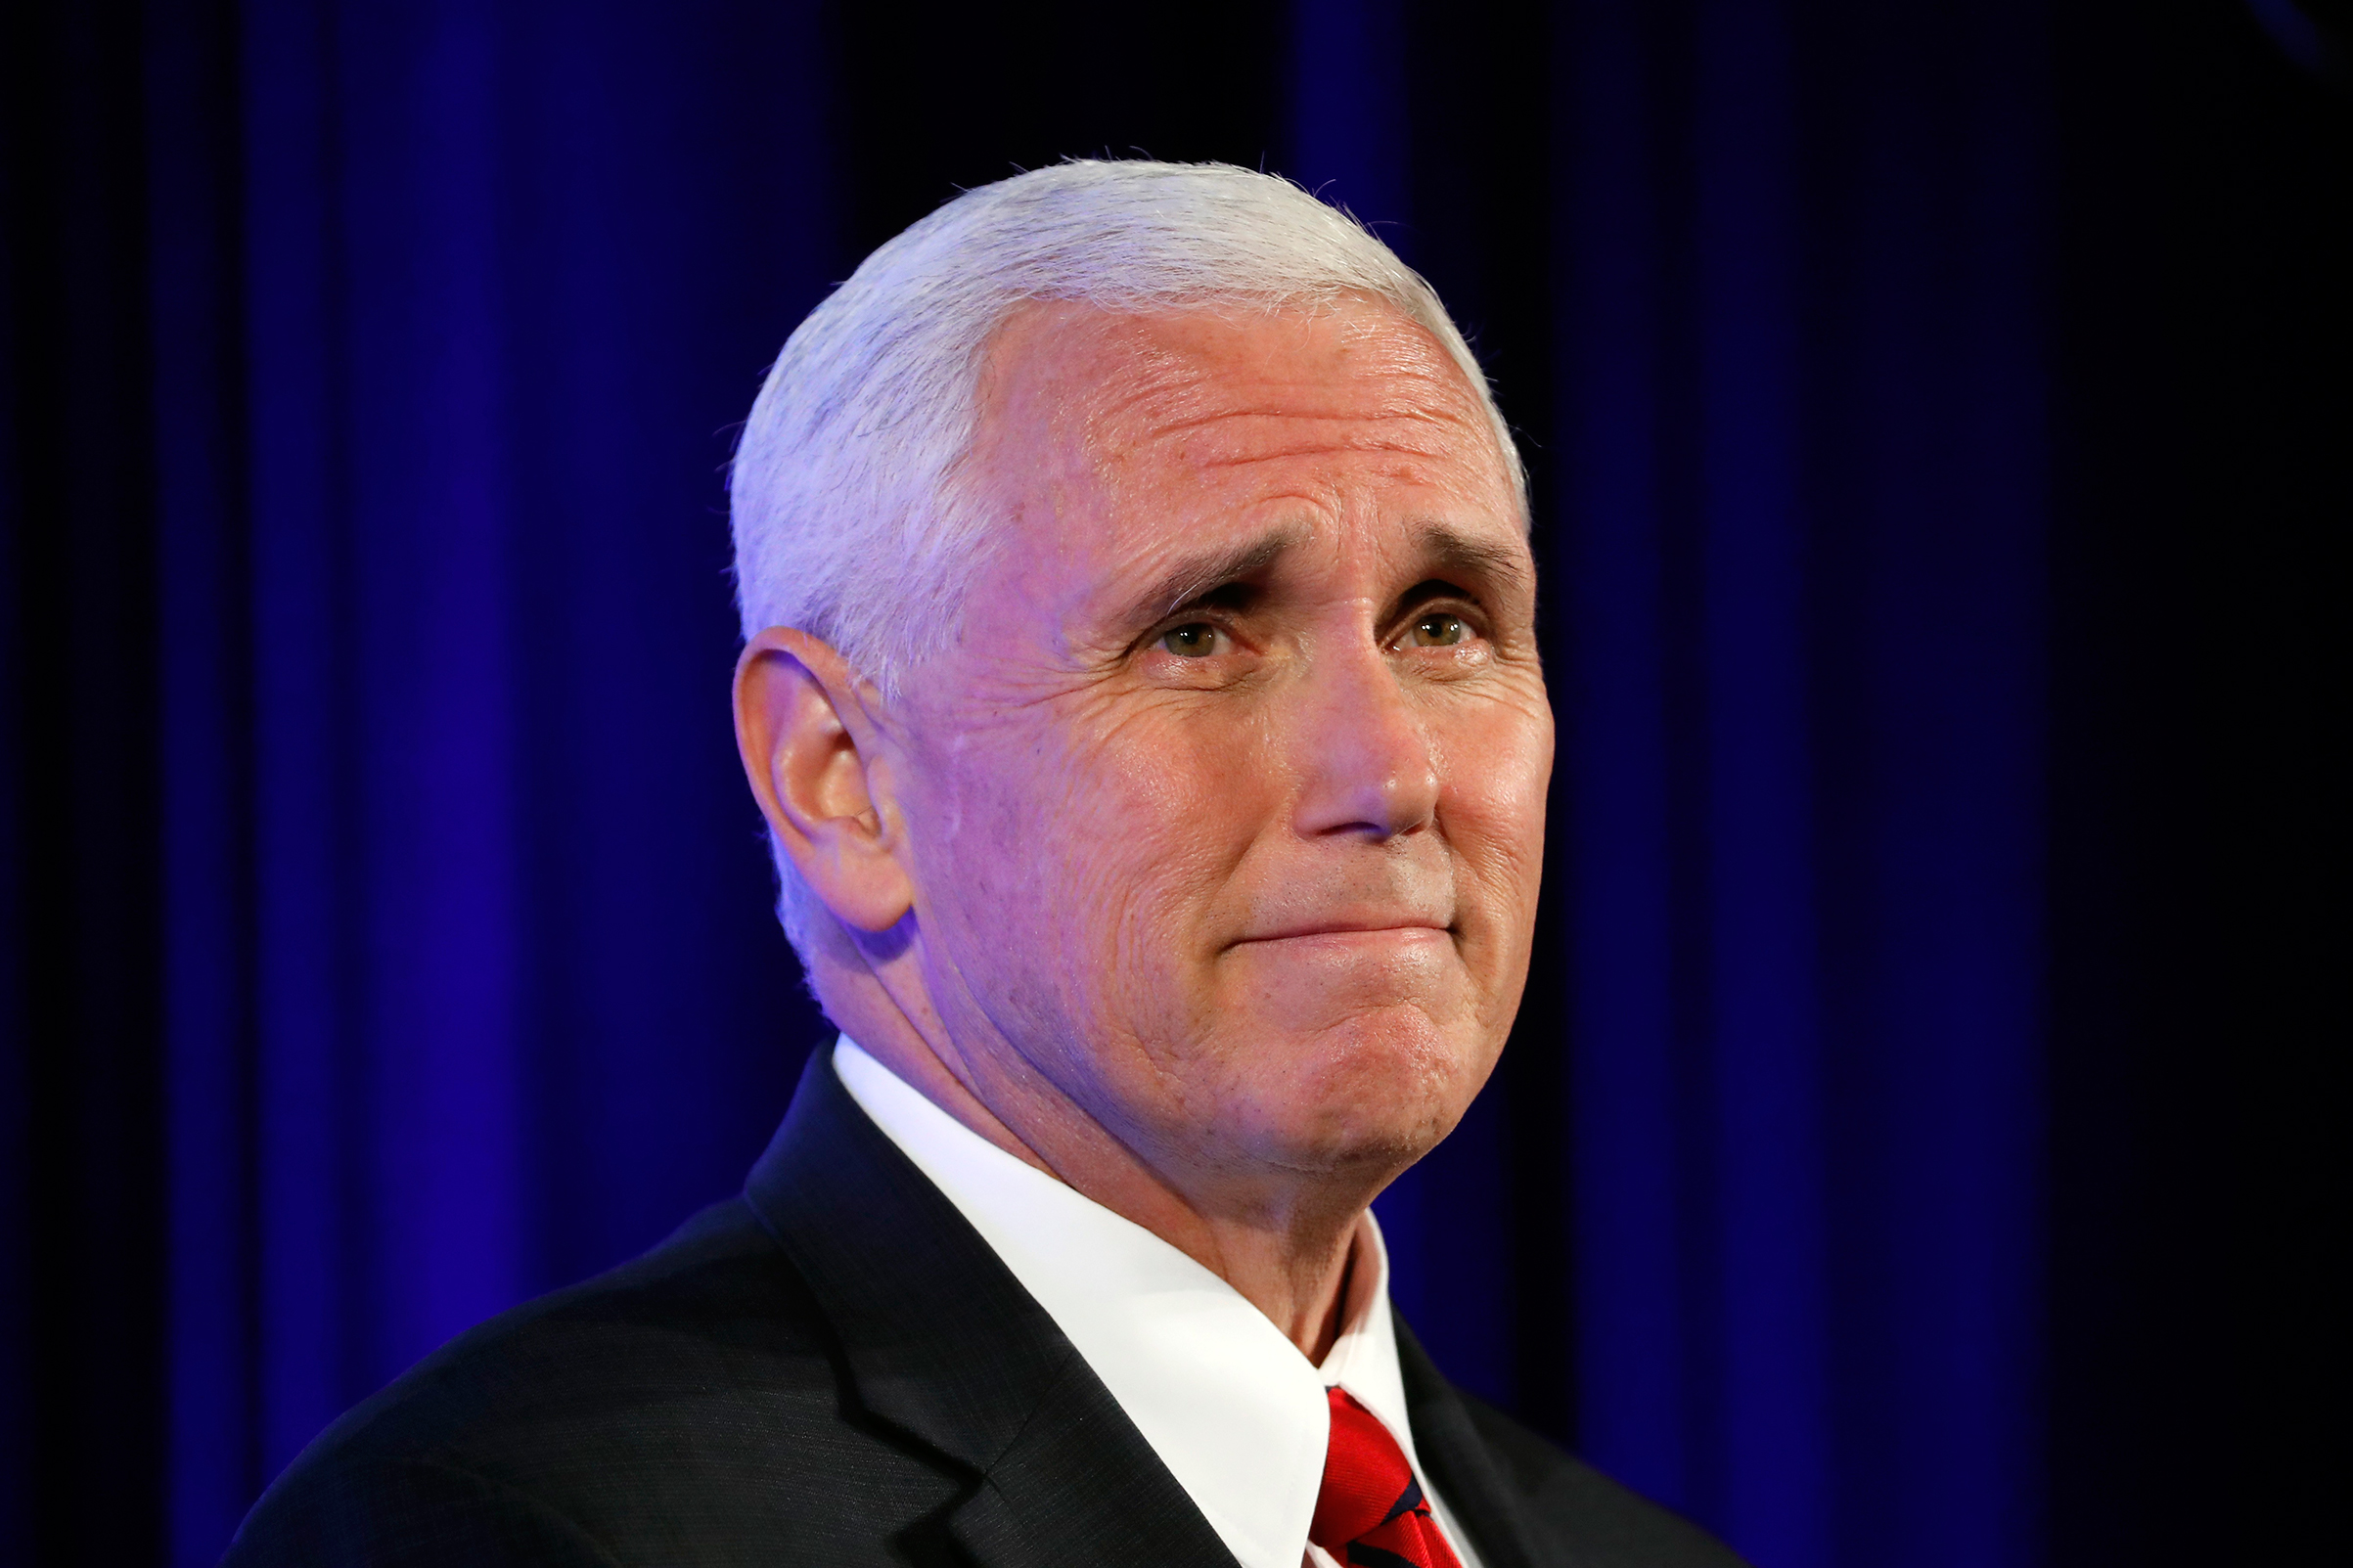 More than almost anyone in Trump's circle, Pence is in demand